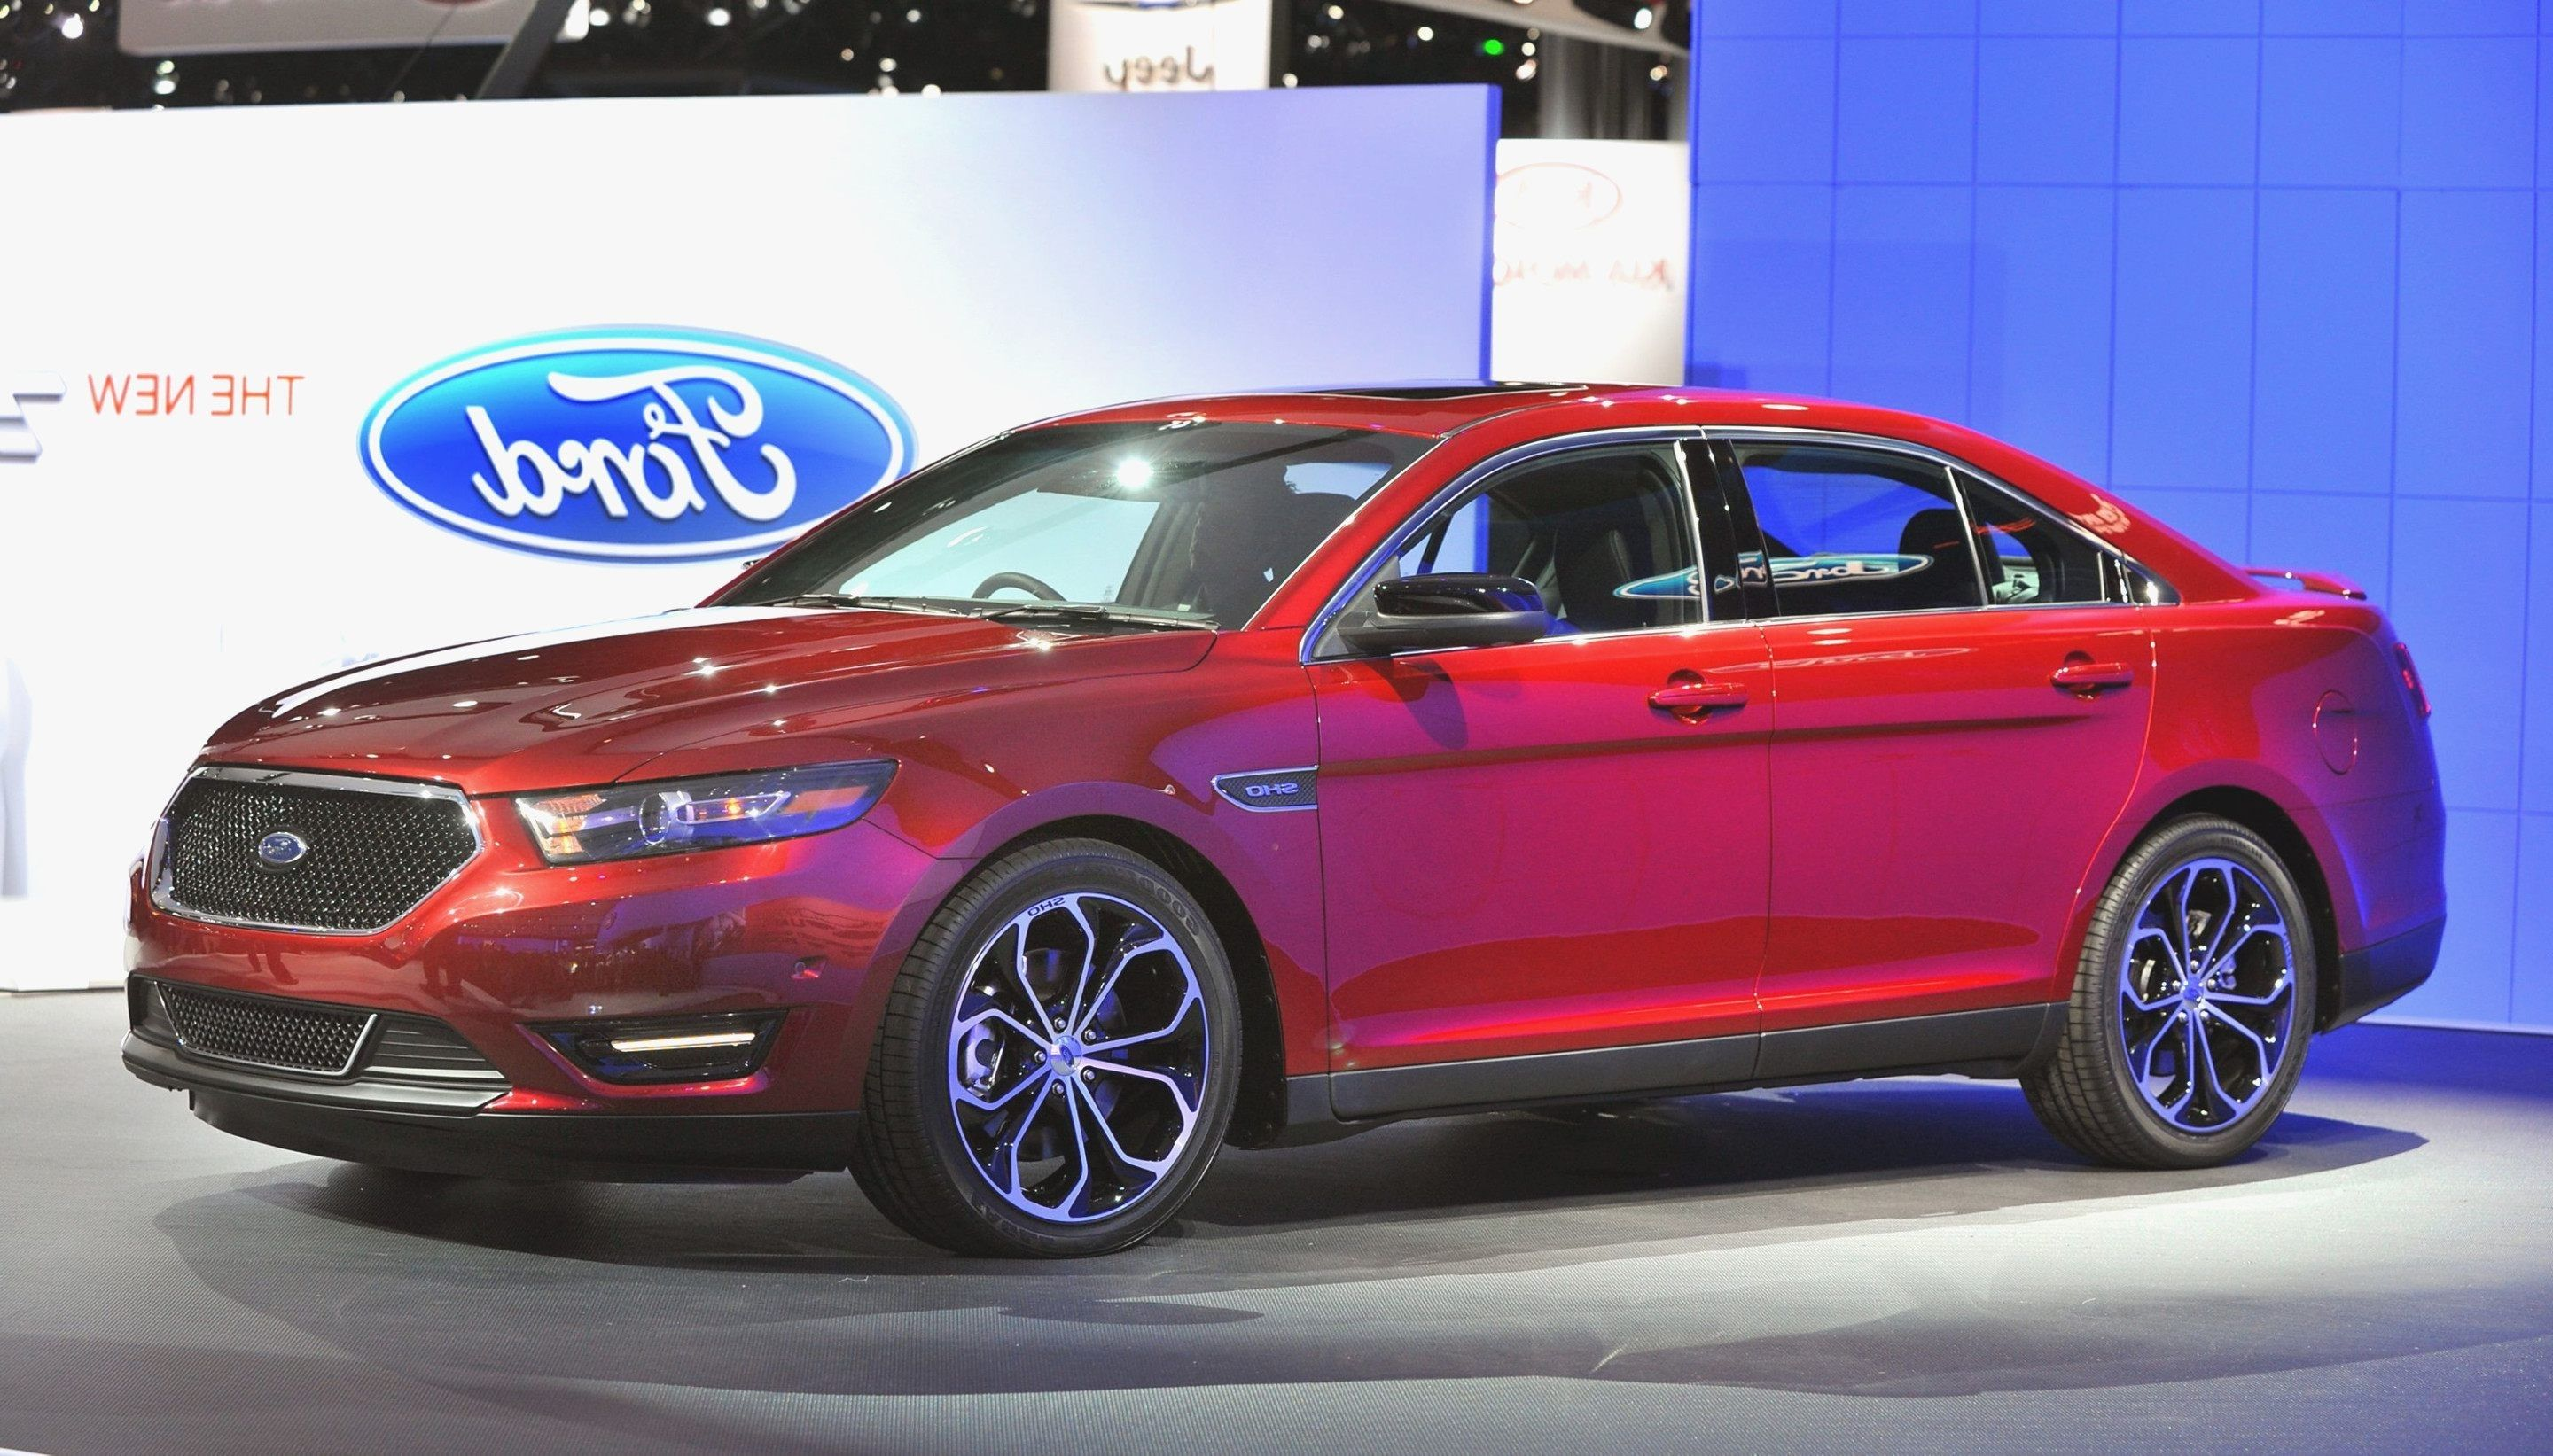 Ford Taurus Review >> 2019 Ford Taurus Spy Car Review Car Review Auto Cars